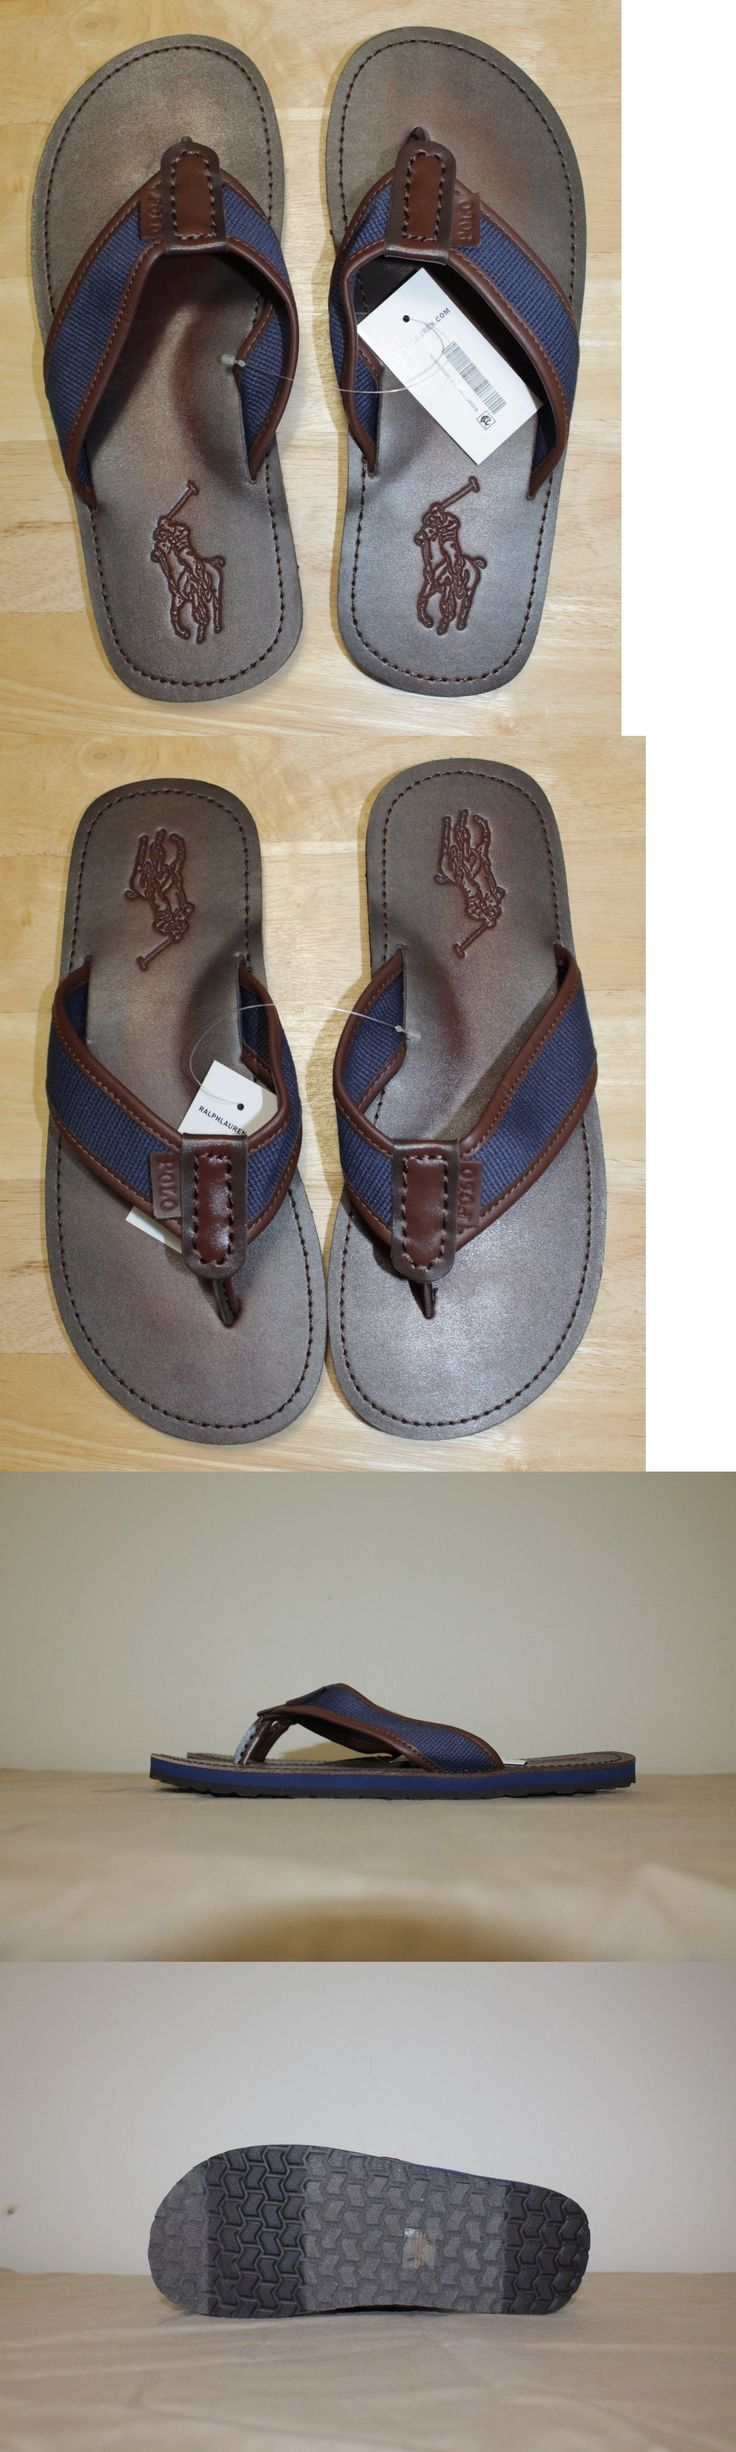 Sandals and Flip Flops 11504: Polo Ralph Lauren Men Leather Flip-Flops Size 8, 9 ,10 ,11 ,12,13 New With Tags -> BUY IT NOW ONLY: $45.88 on eBay!